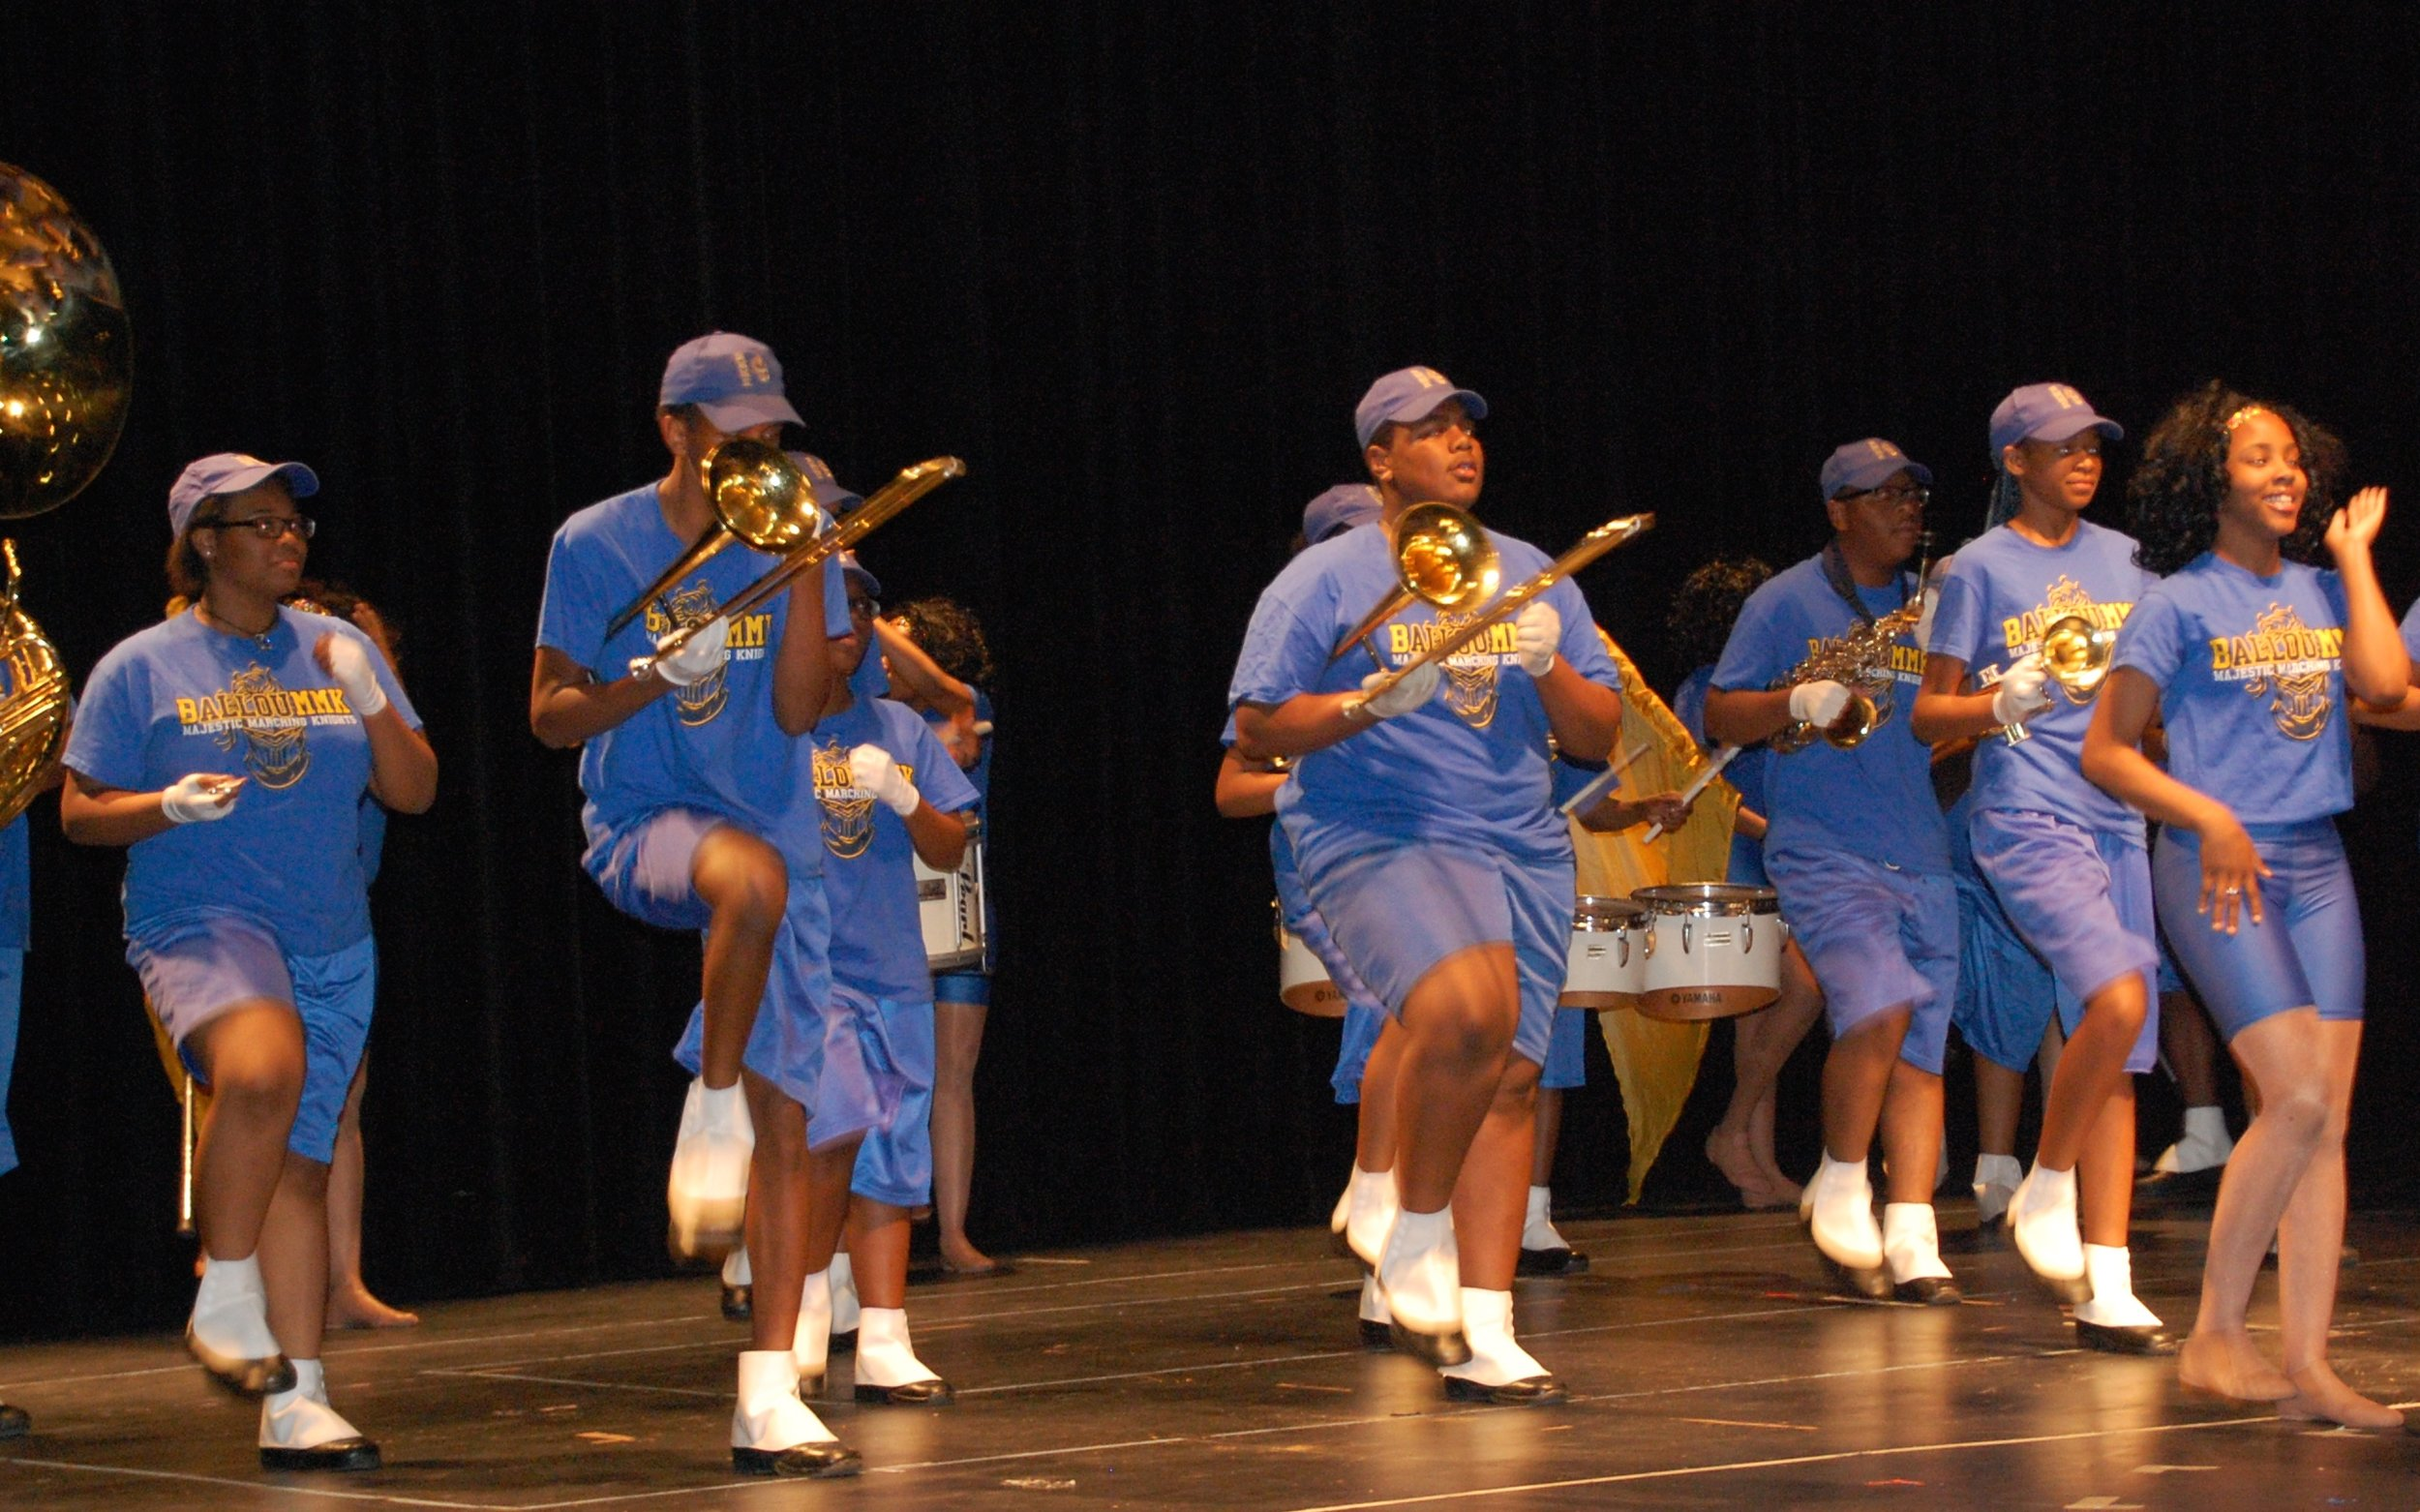 Ballou High School Band kicked off the performance.